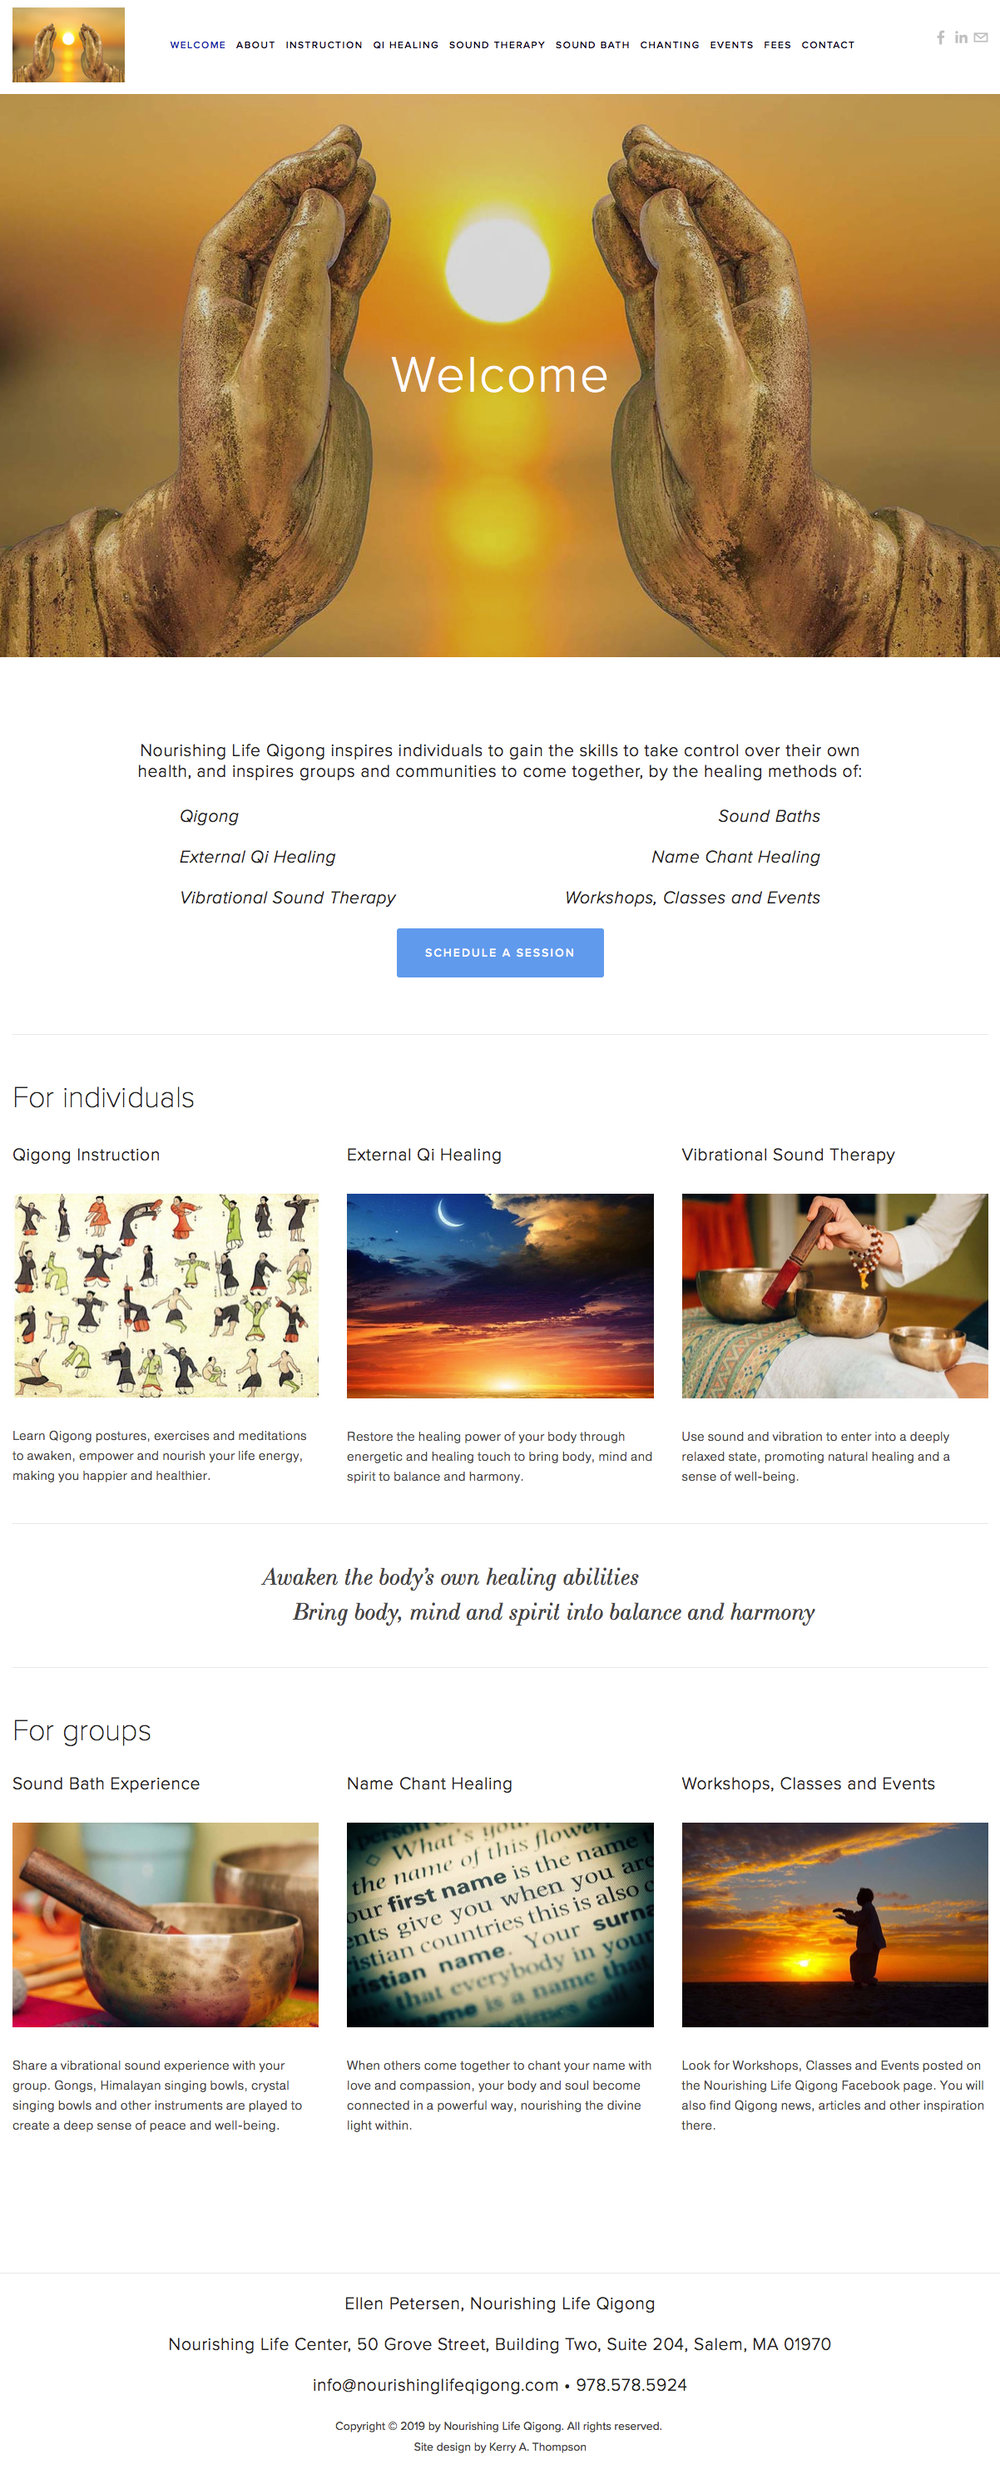 Nourishing Life Qigong  is a healing arts practice that has individual and group sessions as well as events and classes. The first paragraph summarizes the type of services the practice offers and the first button is a call to action to schedule a session. Scrolling down the page, rows of images and service descriptions can be clicked to go to other parts of the site.